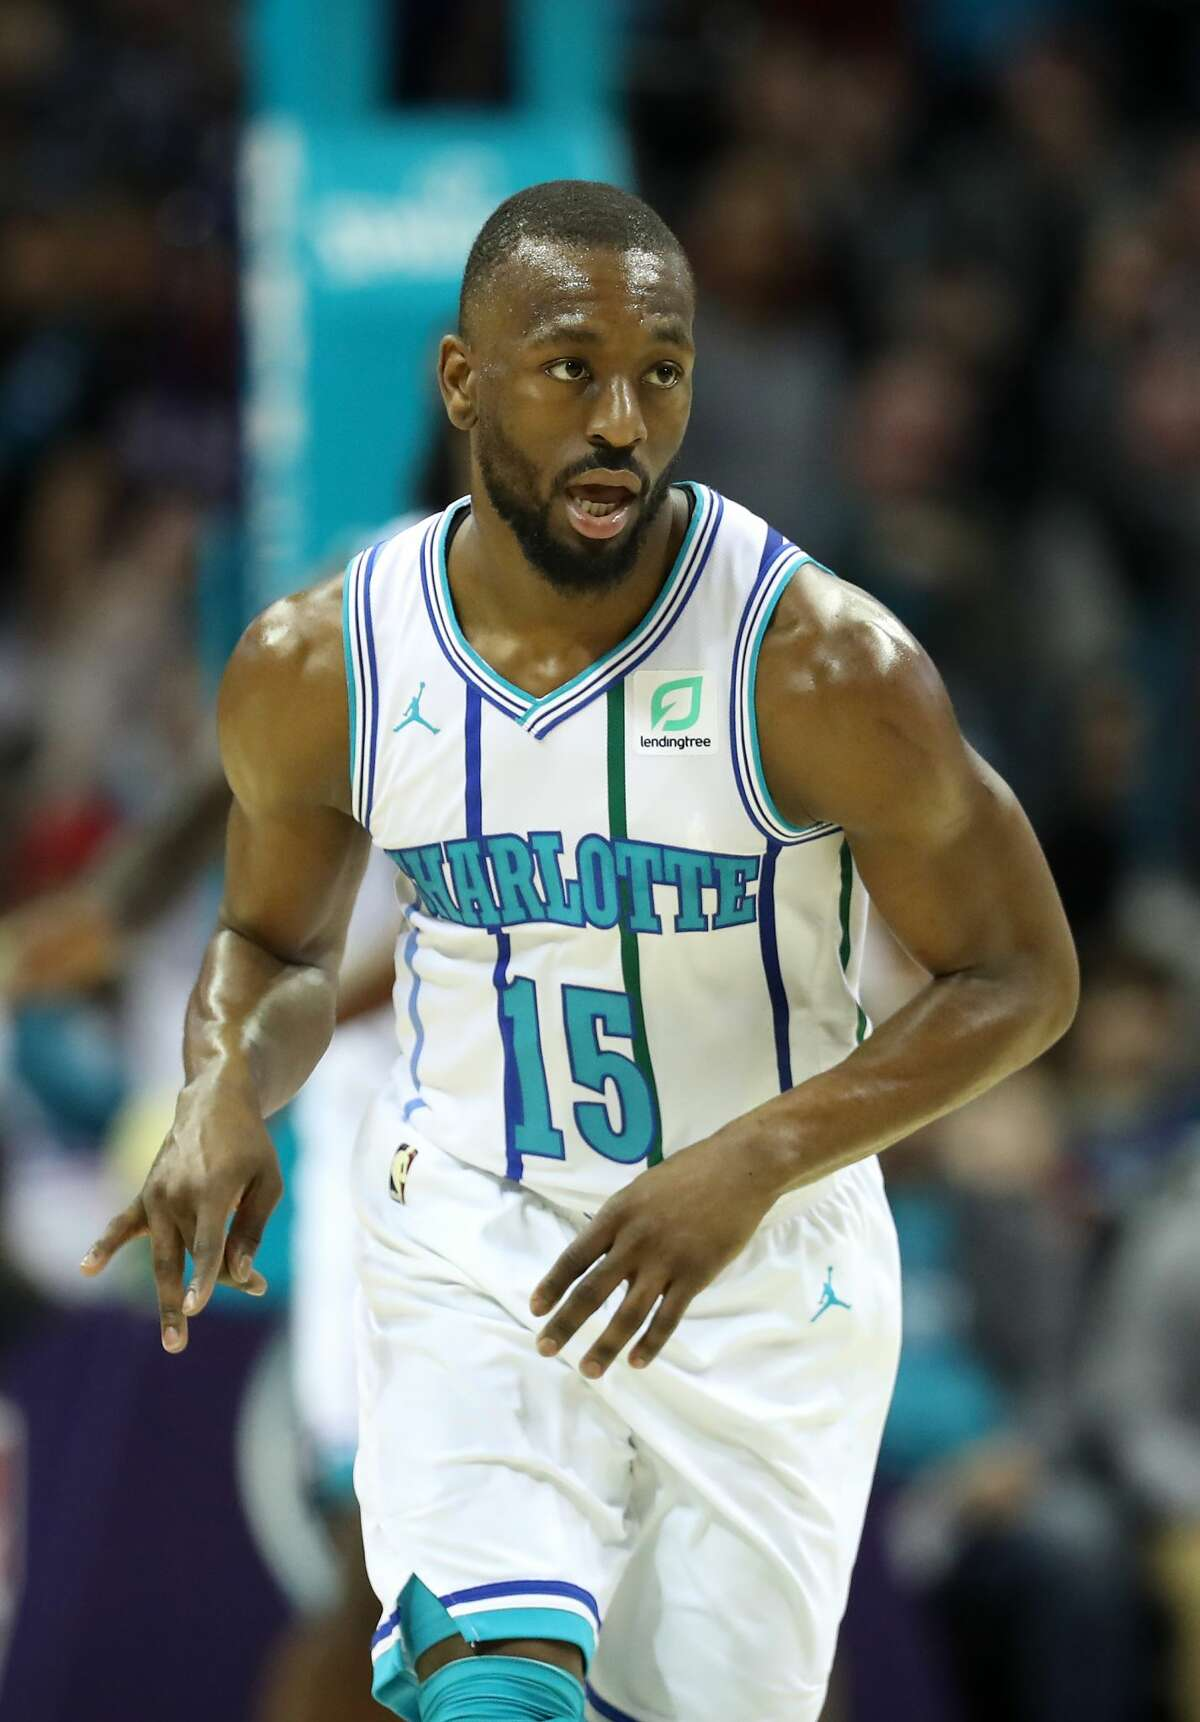 CHARLOTTE, NORTH CAROLINA - FEBRUARY 27: Kemba Walker #15 of the Charlotte Hornets reacts during their game against the Houston Rockets at Spectrum Center on February 27, 2019 in Charlotte, North Carolina. NOTE TO USER: User expressly acknowledges and agrees that, by downloading and or using this photograph, User is consenting to the terms and conditions of the Getty Images License Agreement. (Photo by Streeter Lecka/Getty Images)